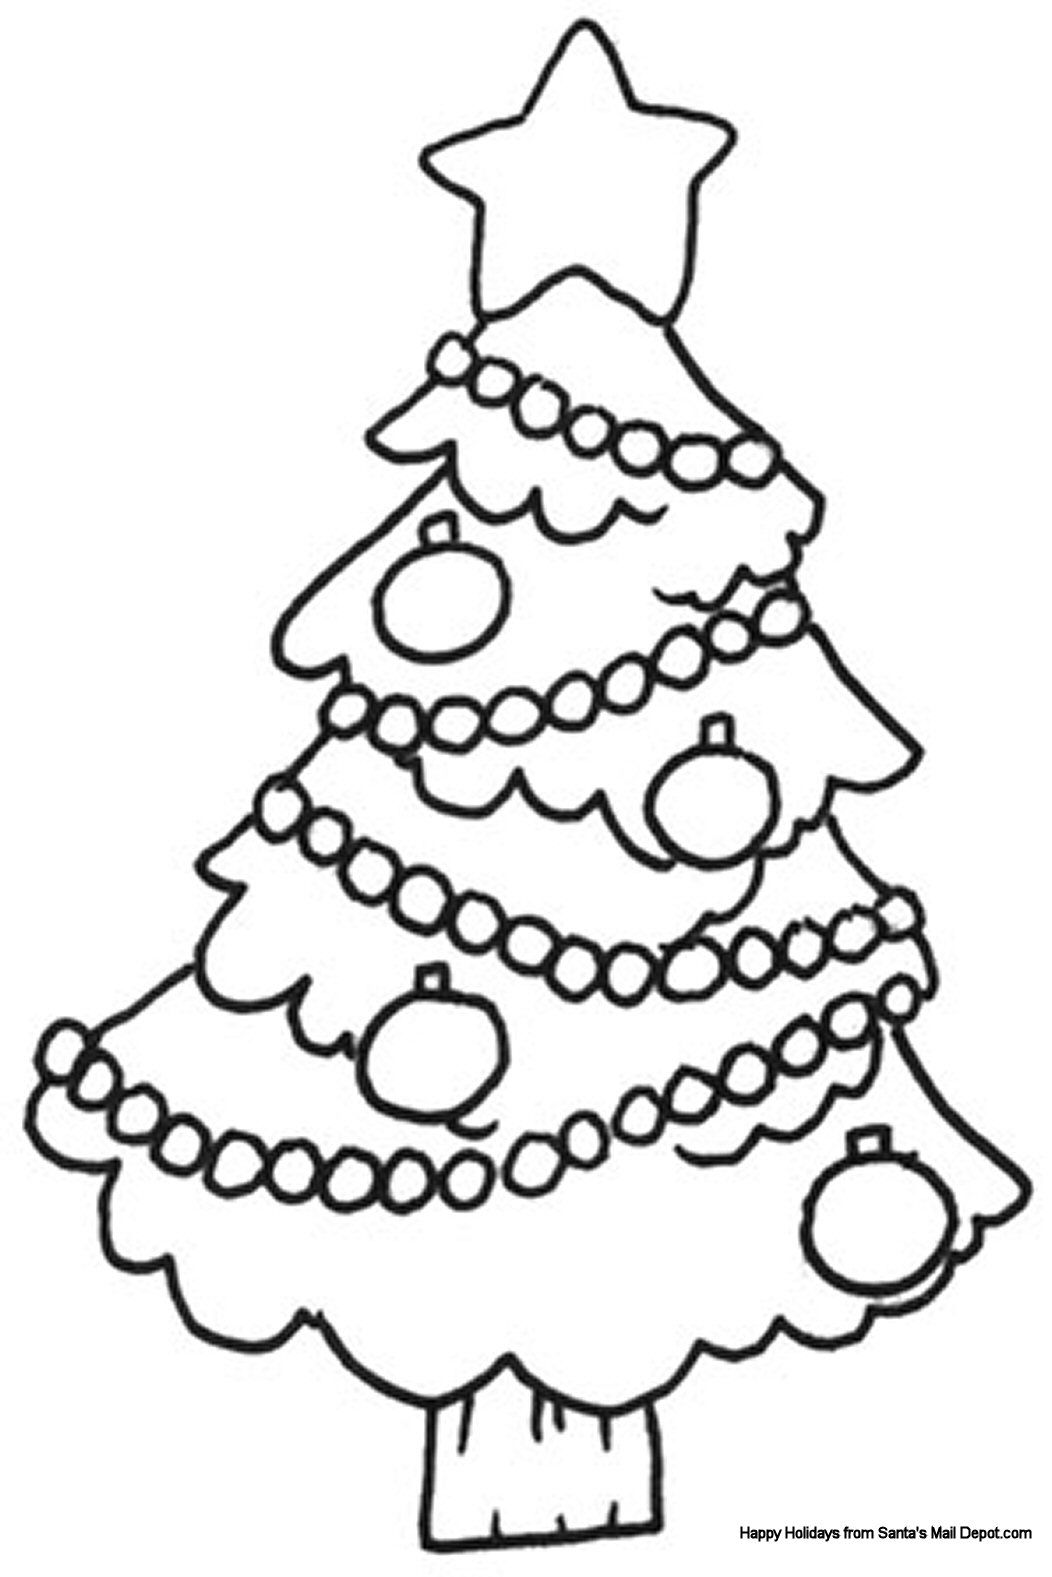 Christmas Colouring Sheet Only Coloring Pages Printable Christmas Coloring Pages Christmas Tree Coloring Page Christmas Pictures To Color